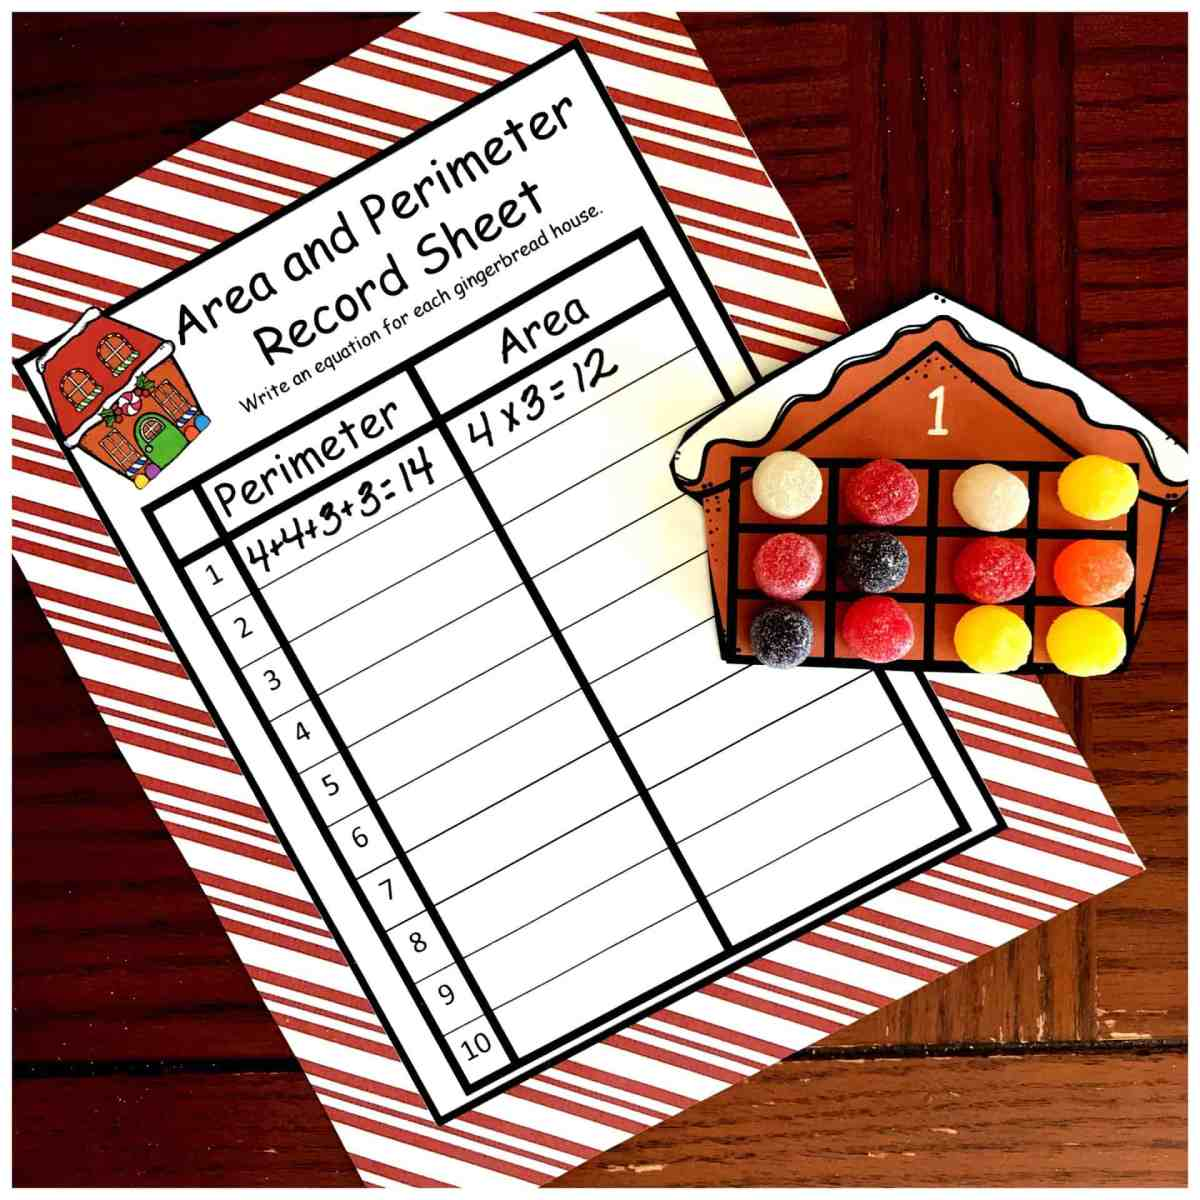 Here's A Free Christmas Themed Area and Perimeter Activity